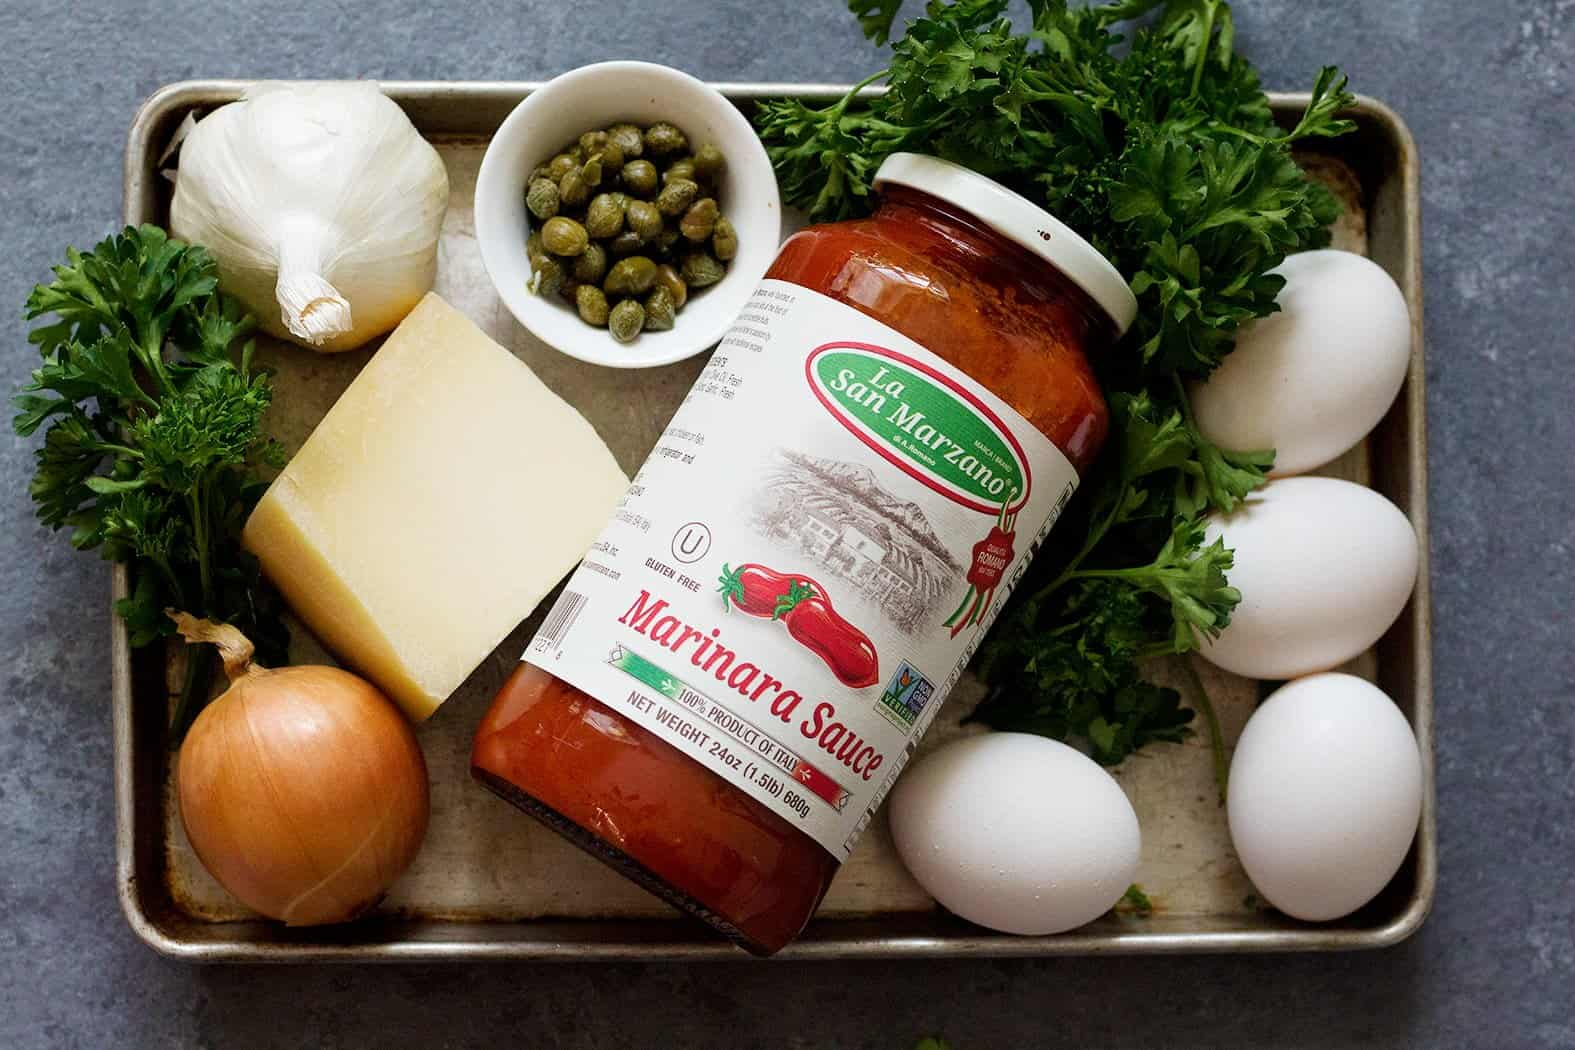 Ingredients to make baked eggs: onions, bell pepper, eggs, La San Marzano Marinara sauce, capers, eggs, parmesan and mozzarella cheese.